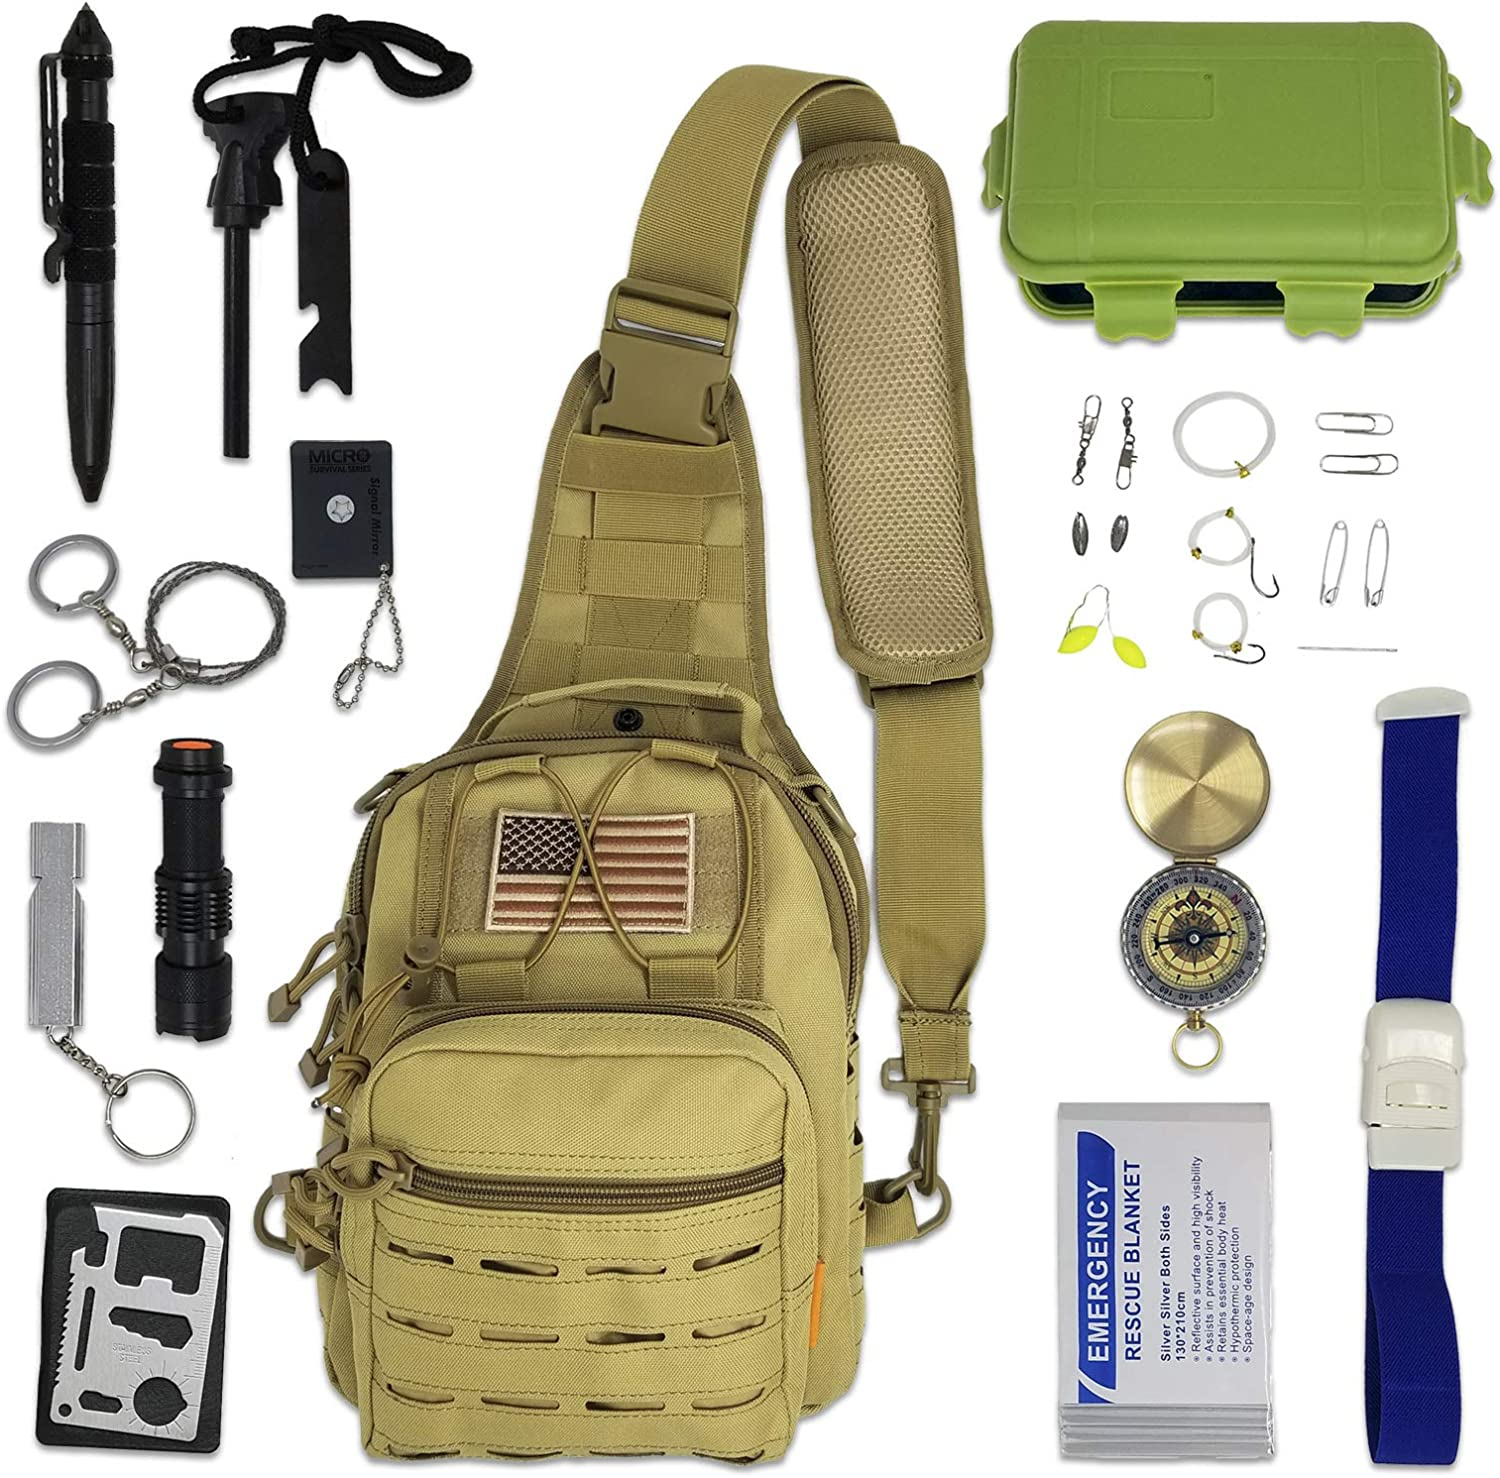 Bug Out Bag New Orleans Mall Survival Kit - Elegant Emergency Tactical Sling with Gea